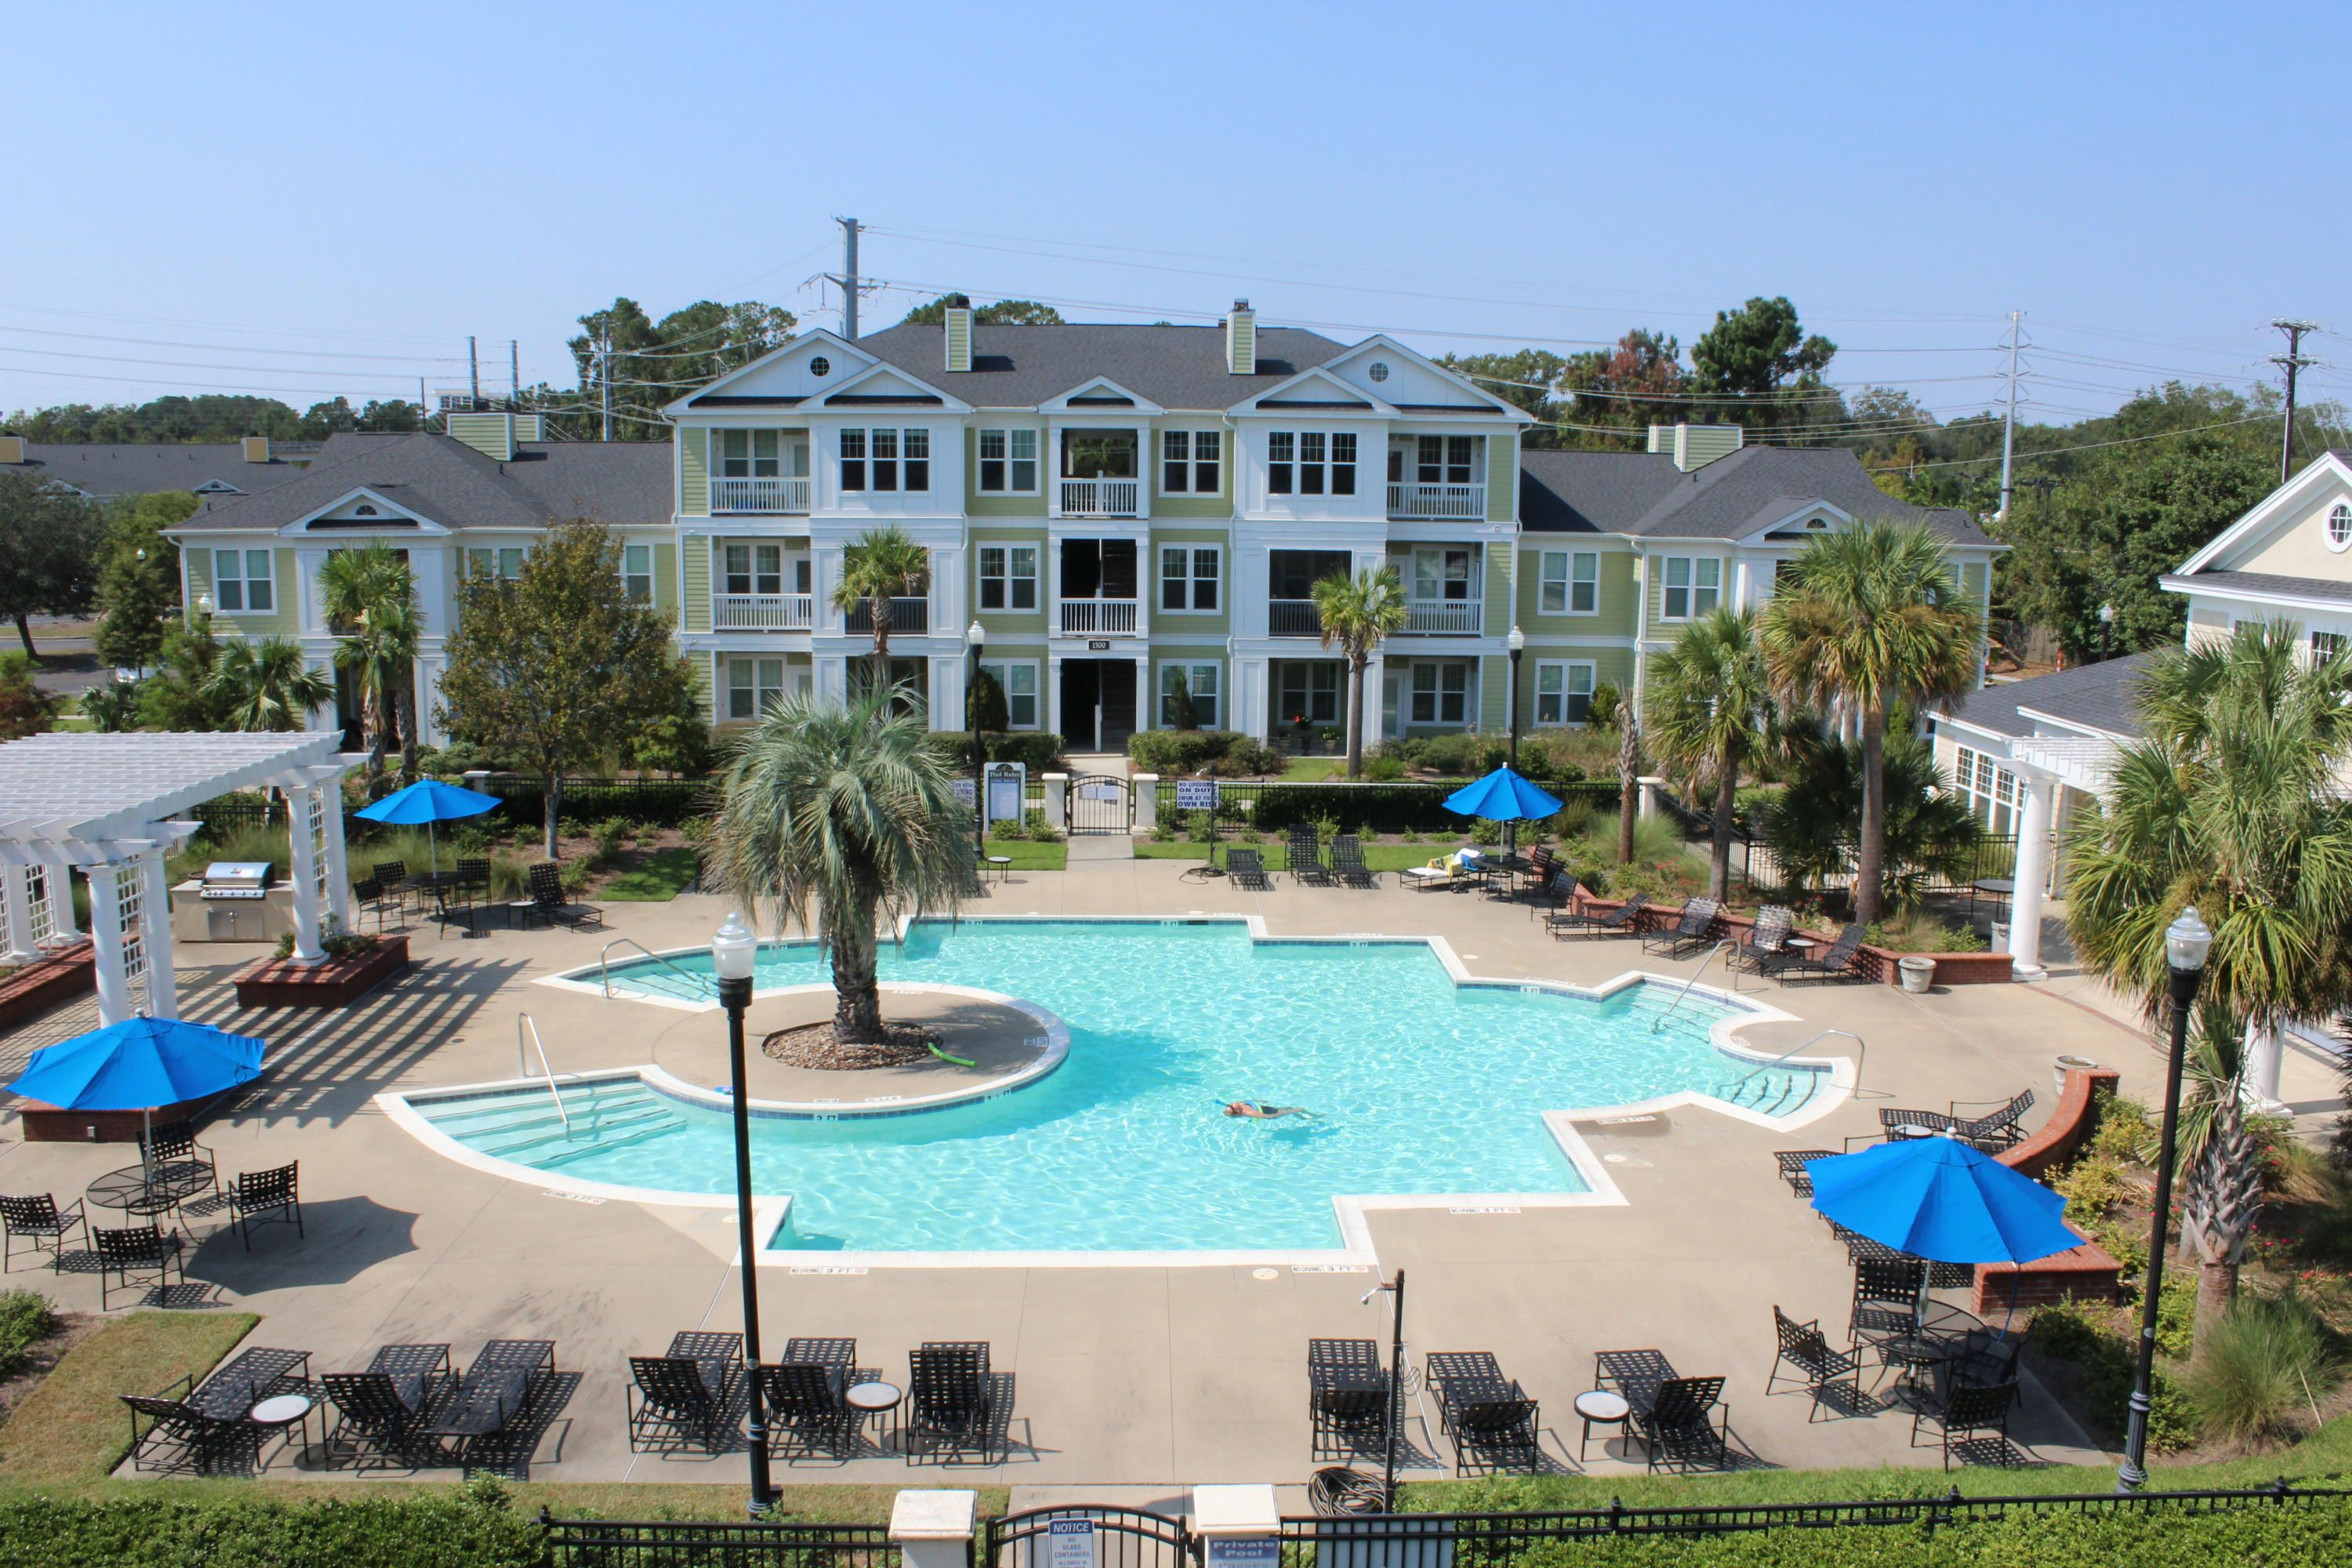 1114 Rosewood Ln Lane Mount Pleasant Sc 29464 Luxury Condo Luxury Real Estate Condo